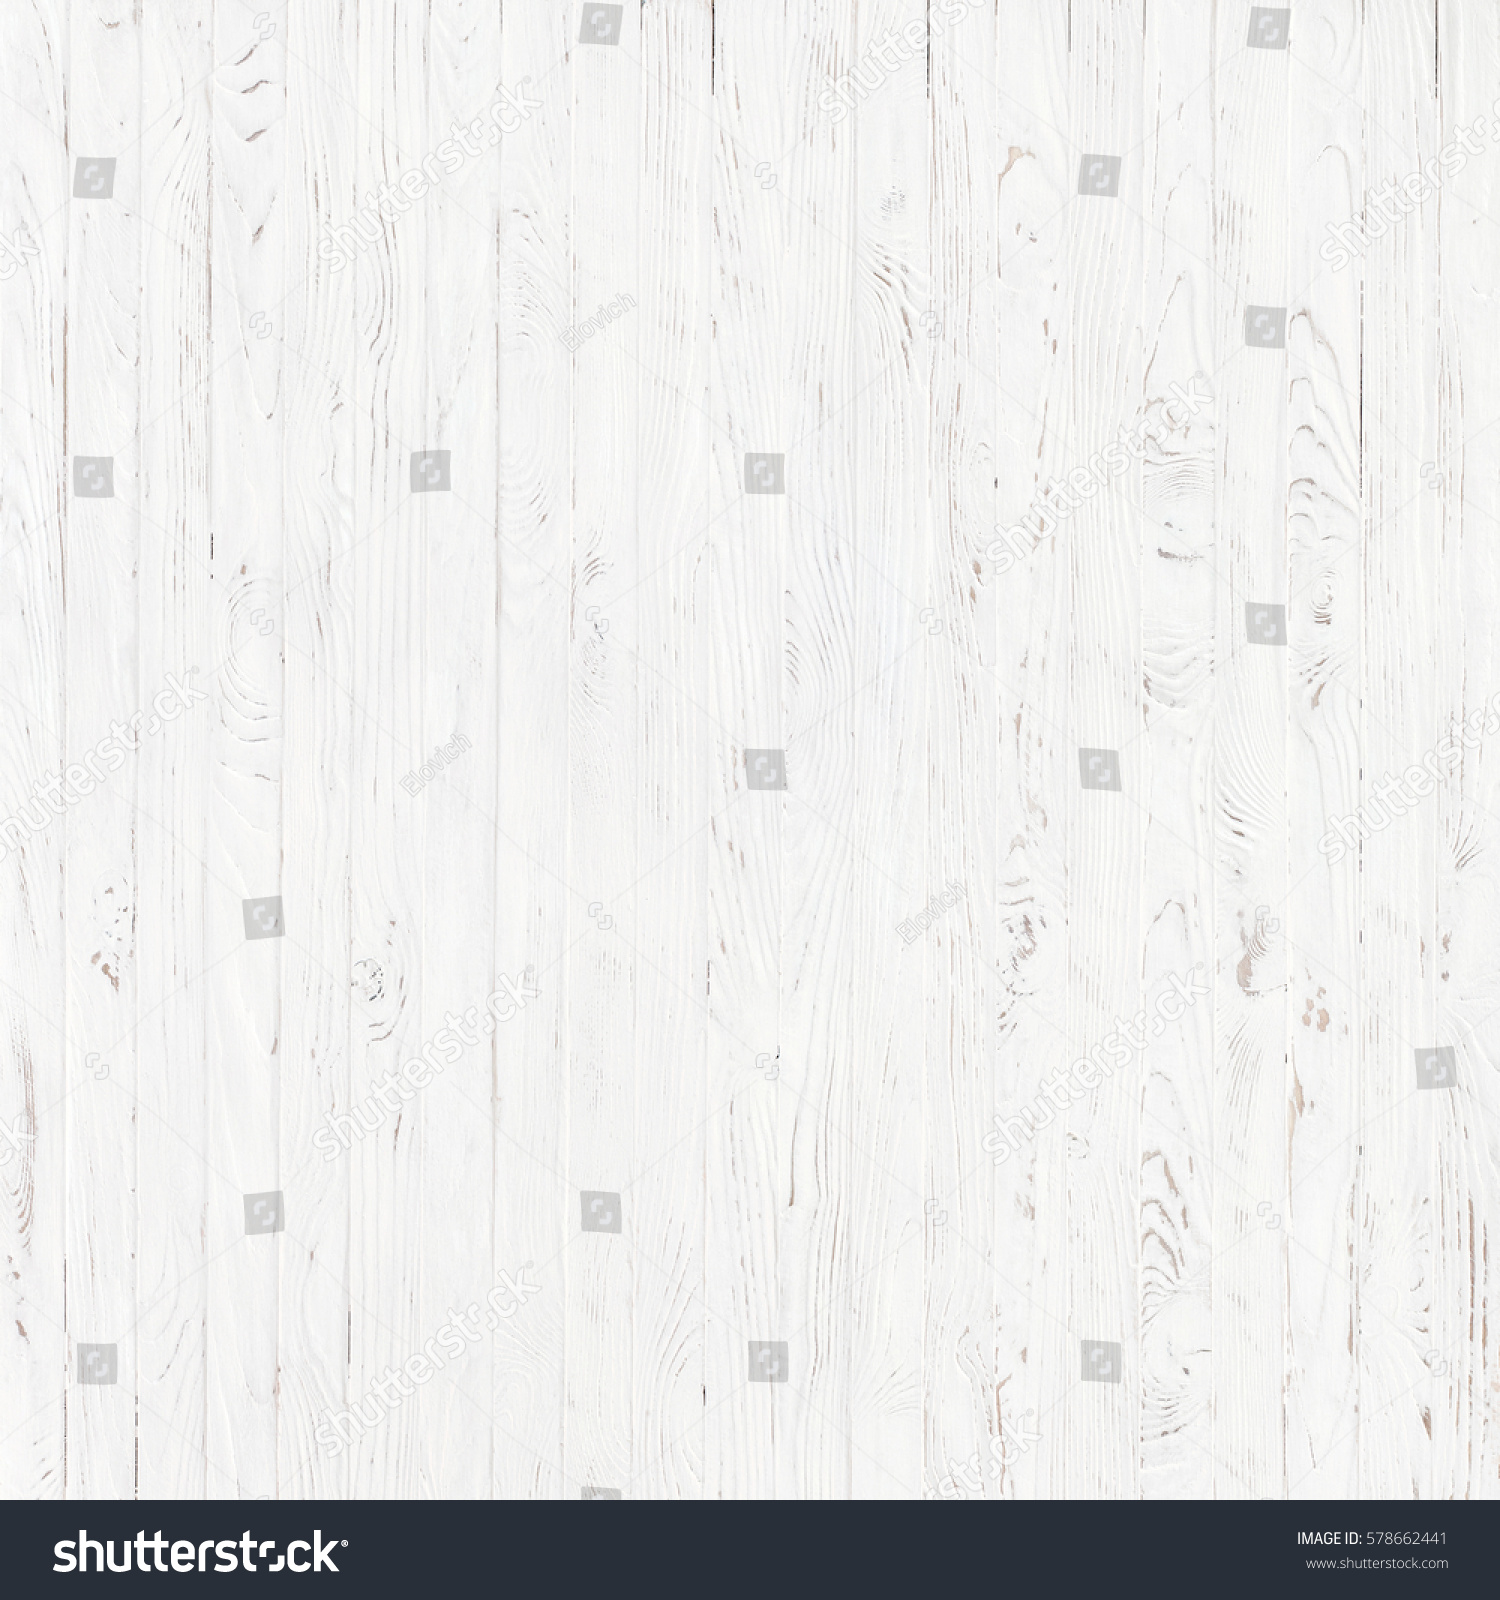 White wood table texture - White Wood Texture Background Wooden Table Top View